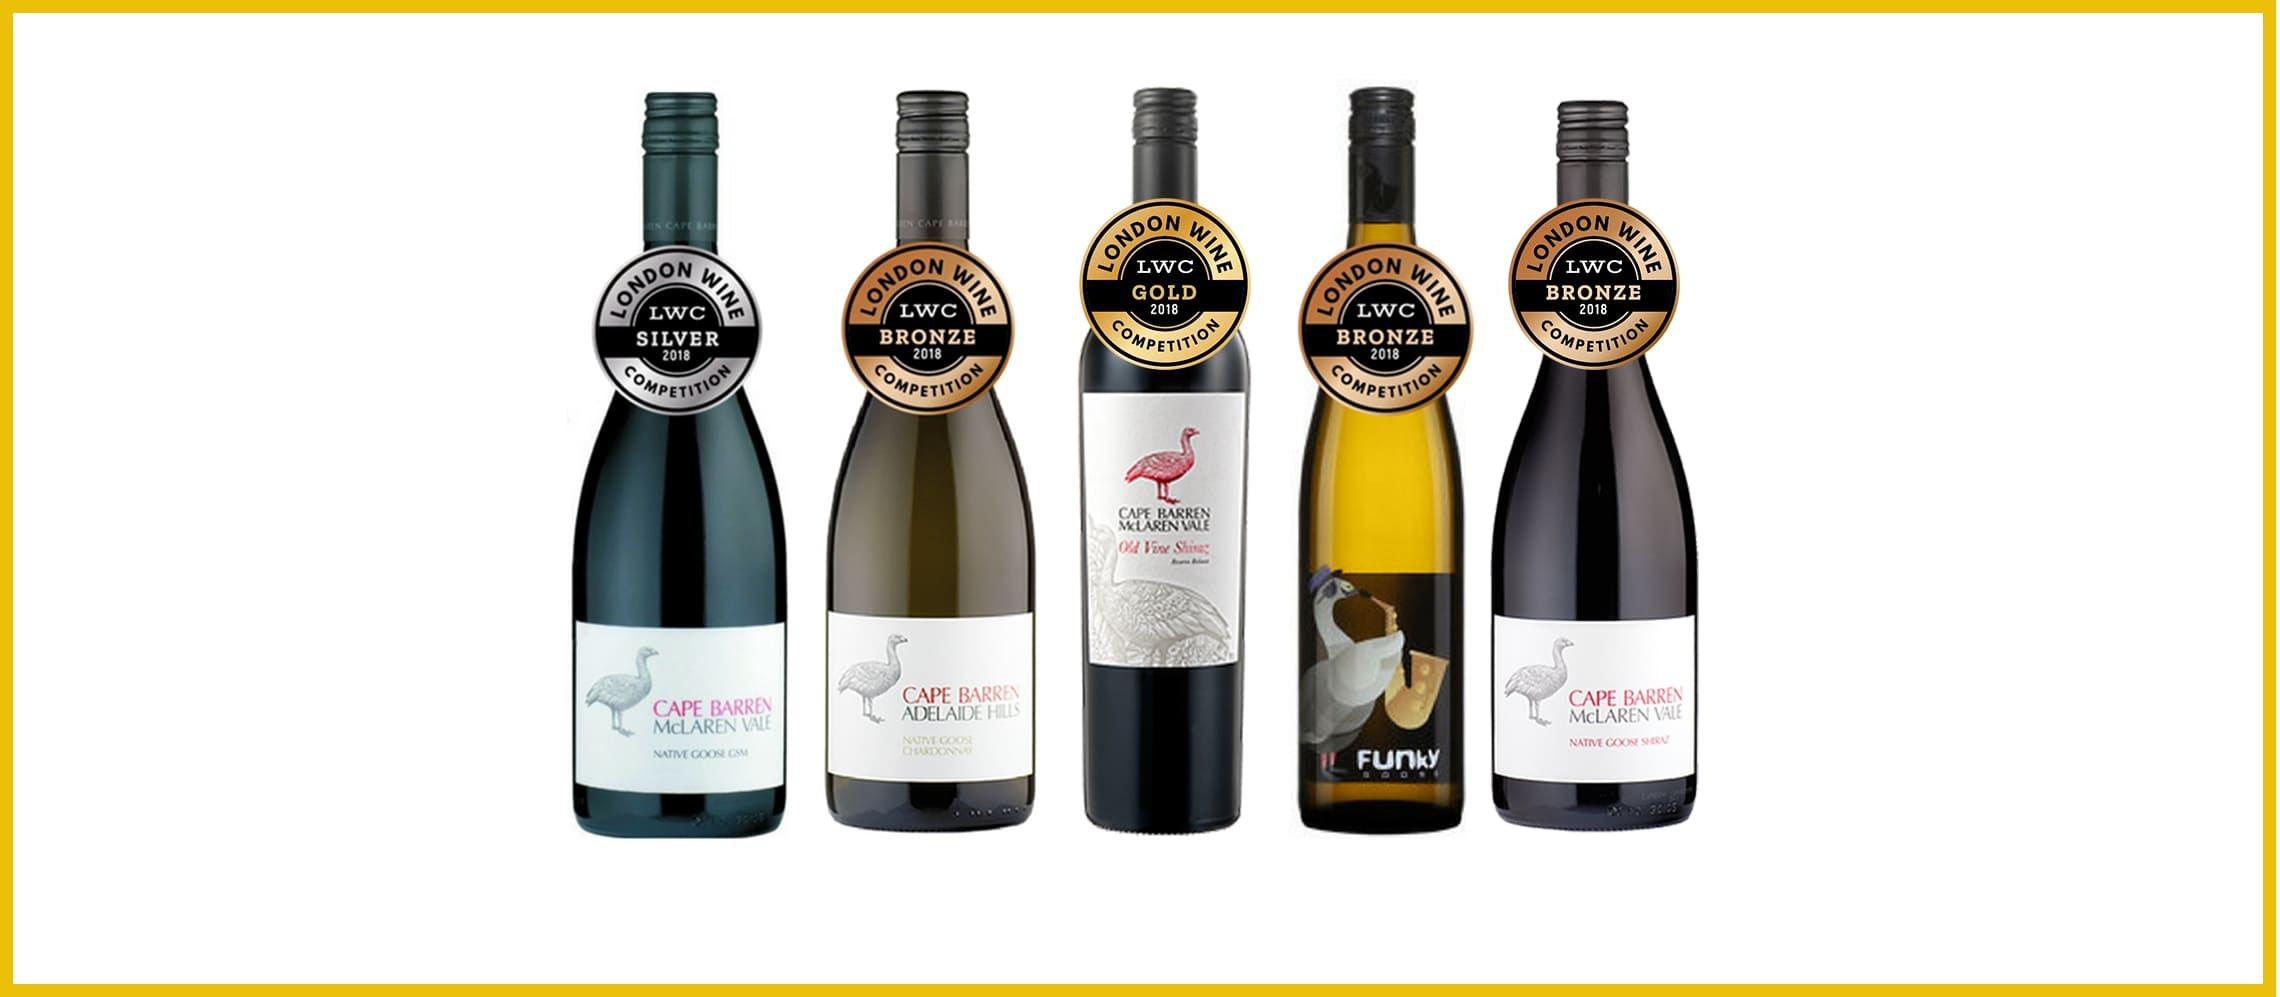 Photo for: Five Awards for Cape Barren Wines at a Wine Competition